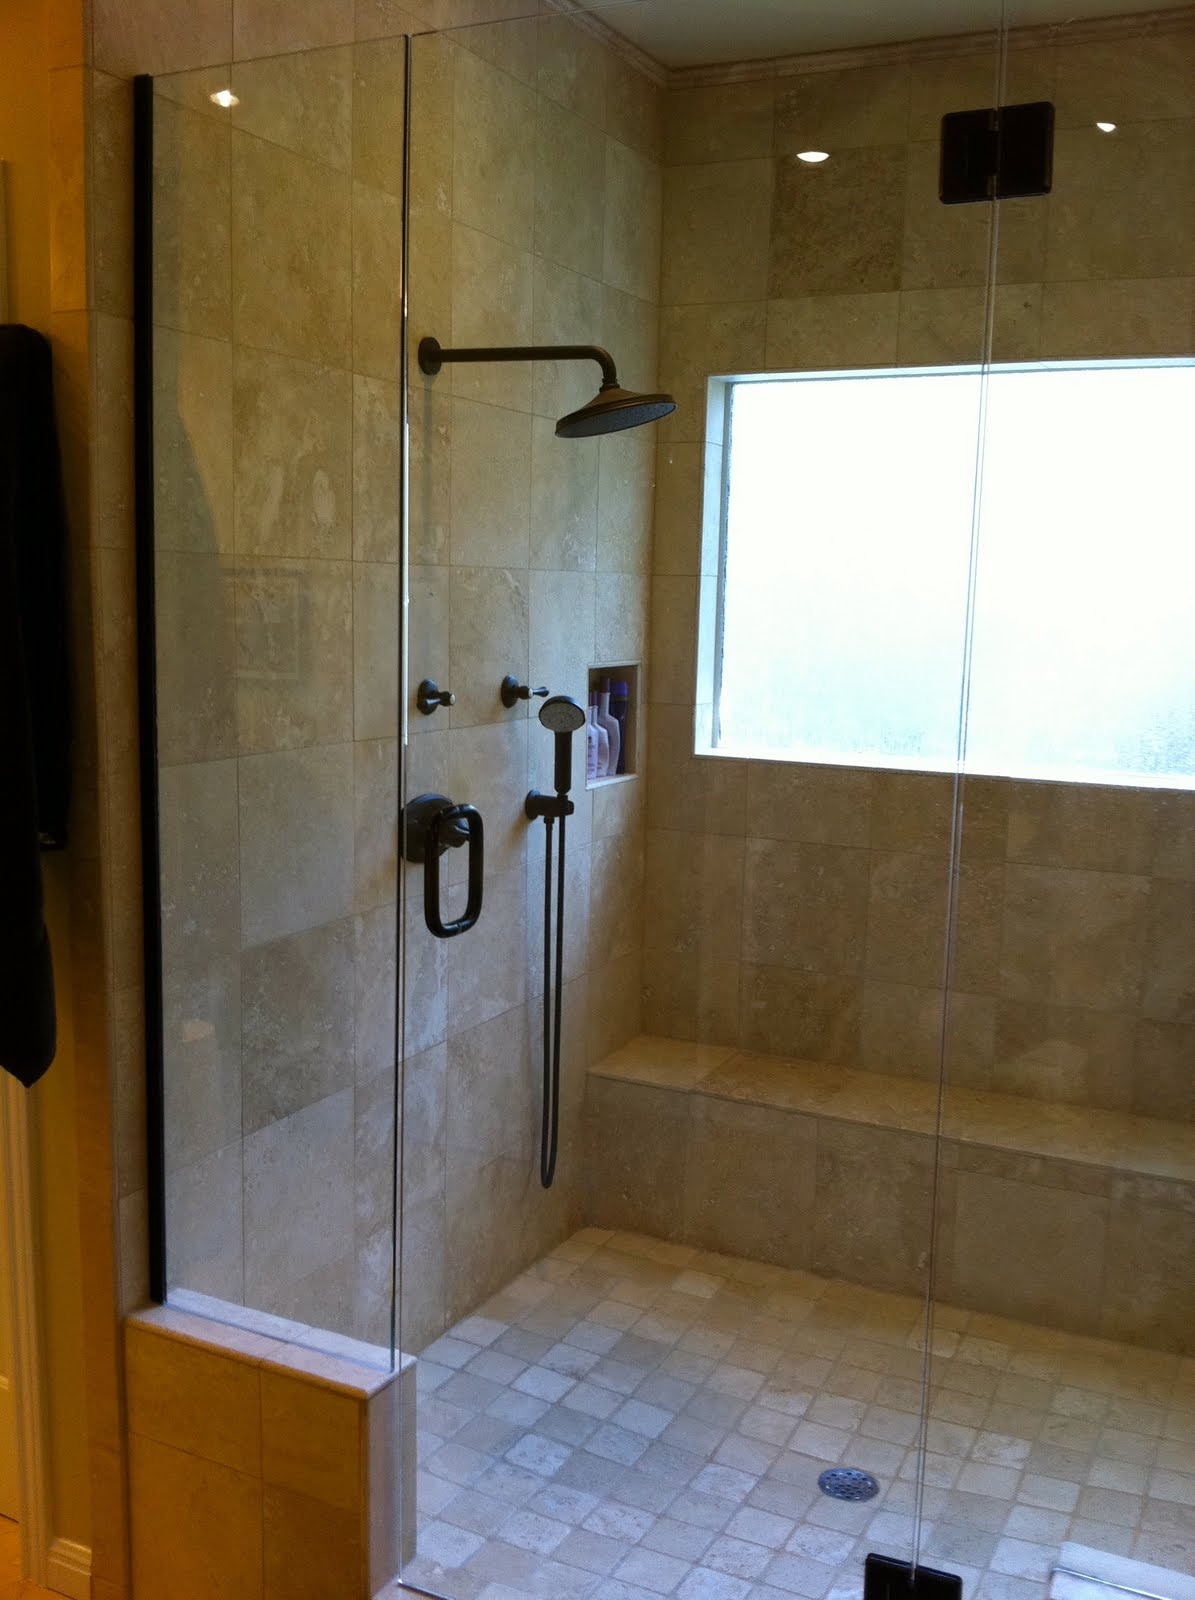 Remodelaholic | Master Bathroom Remodel with Double Shower